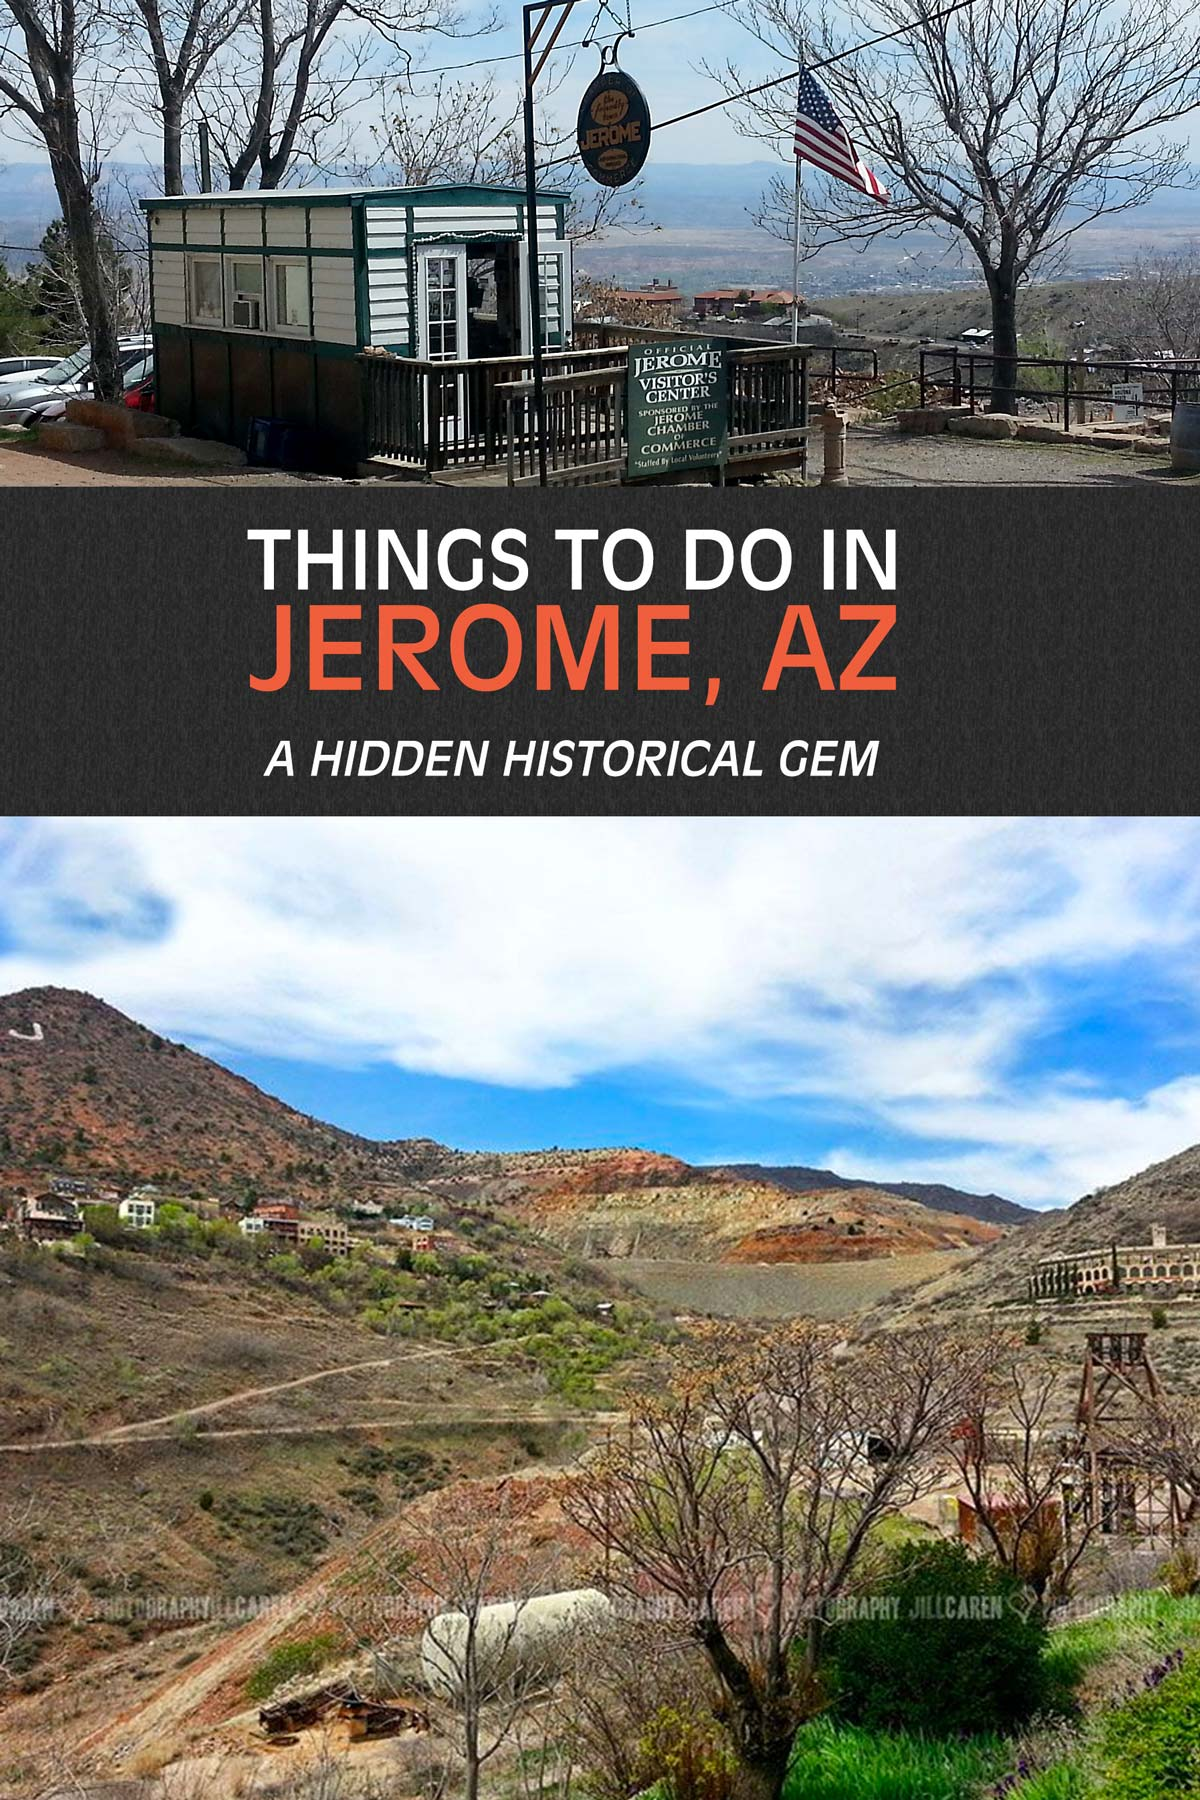 Jerome, AZ - What You Can Do